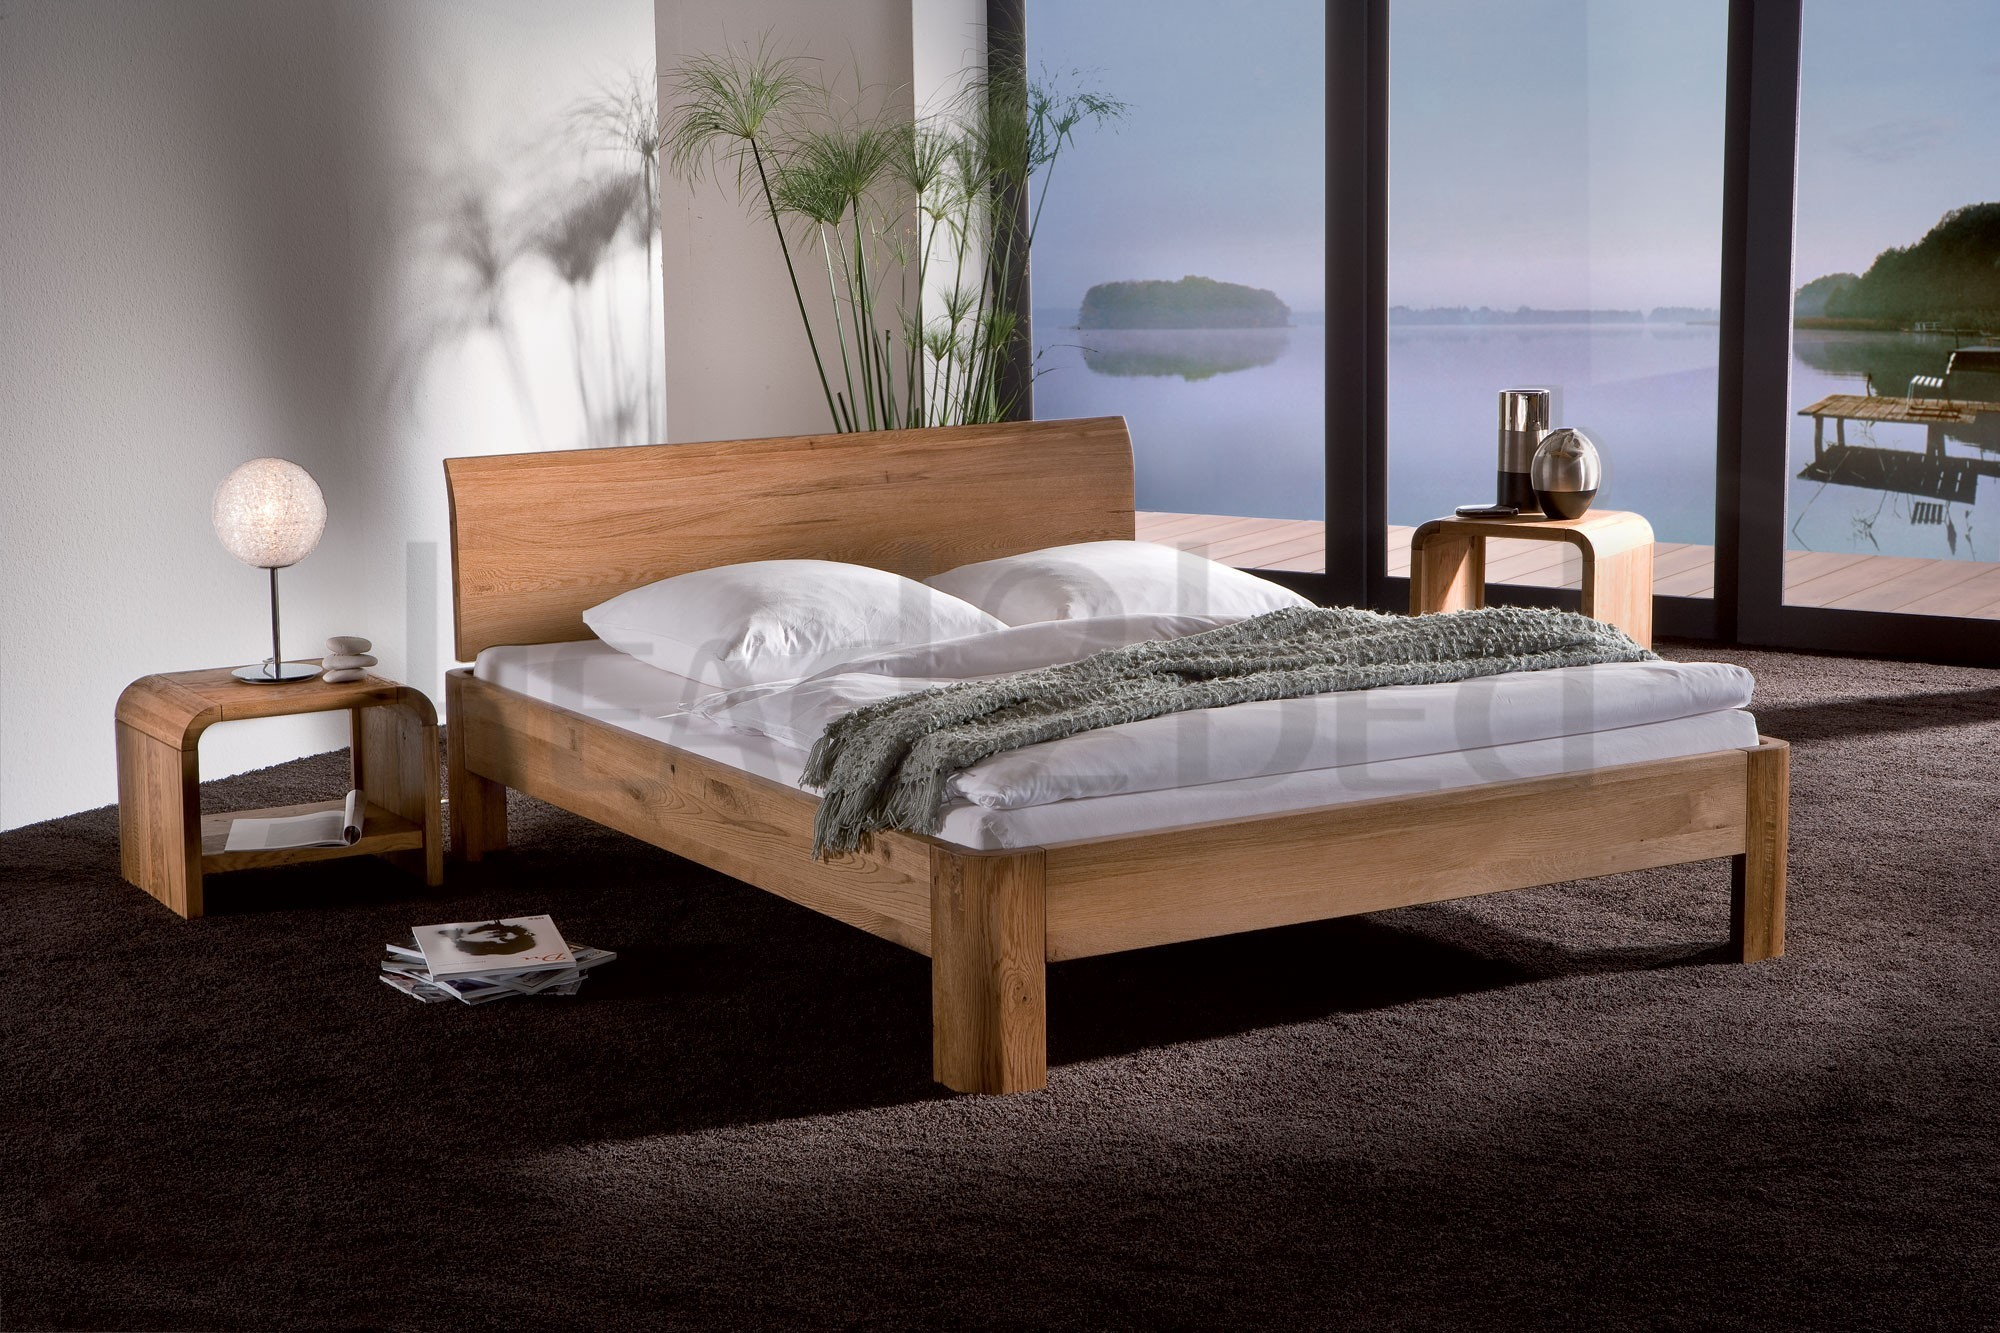 solid wood beds hasena oakline ronda lisio solid oak. Black Bedroom Furniture Sets. Home Design Ideas